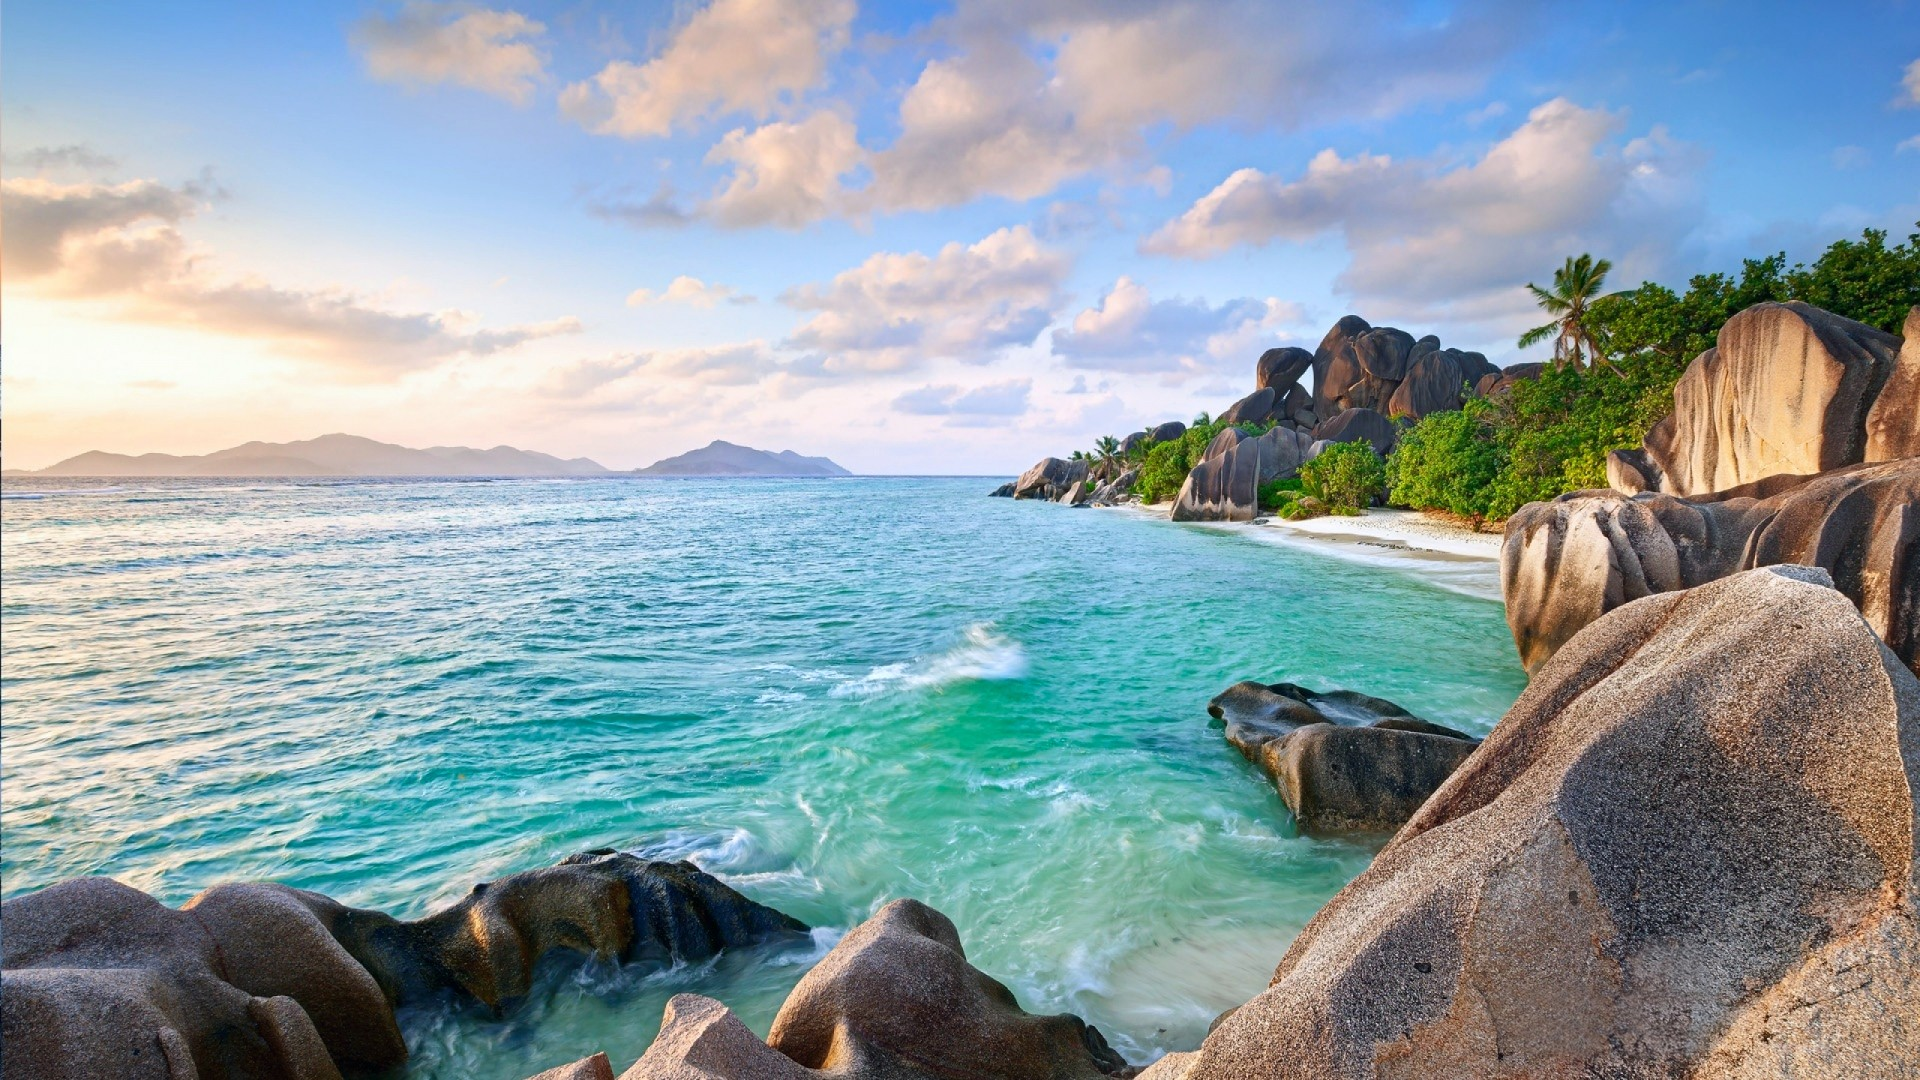 Island Summer Sky Sand Beach Palm Trees Stones (1920×1080) Need #iPhone #6S  #Plus #Wallpaper/ #Background for #IPhone6SPlus? Follow iPhone 6S Plus …